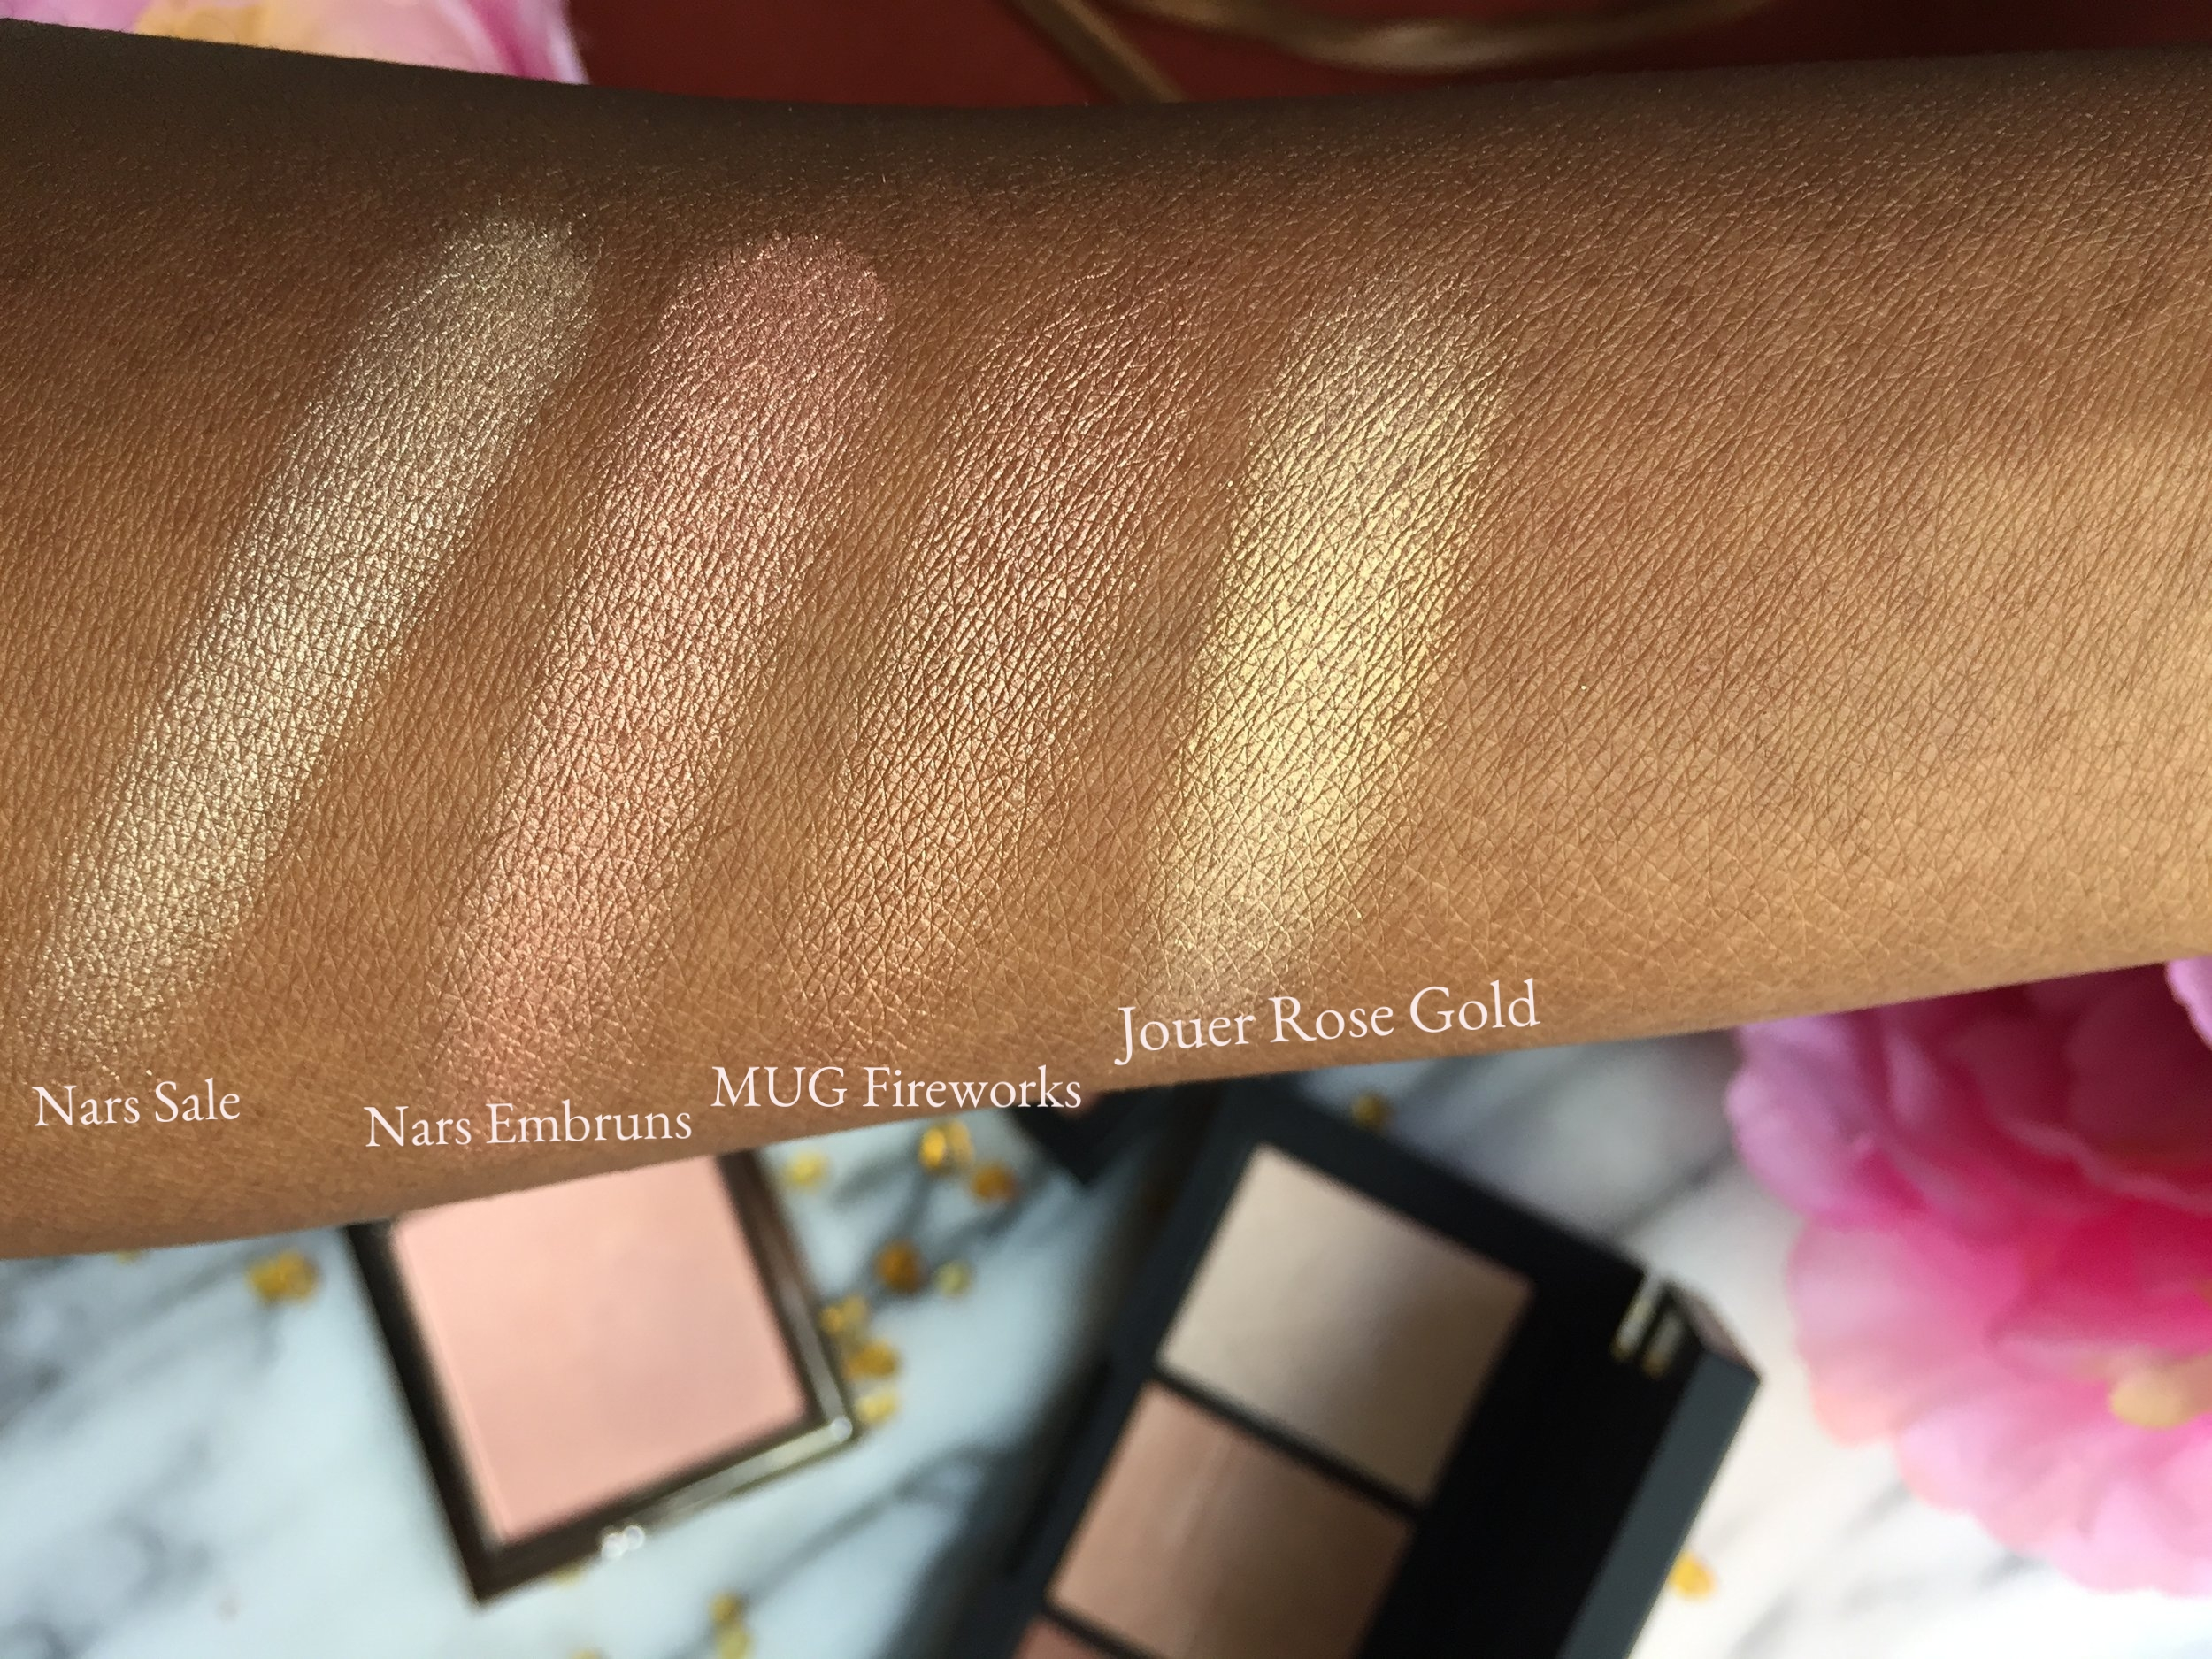 MUG Firework, Jouer Rose Gold and Nars Banc De Sable Highlighter Swatches